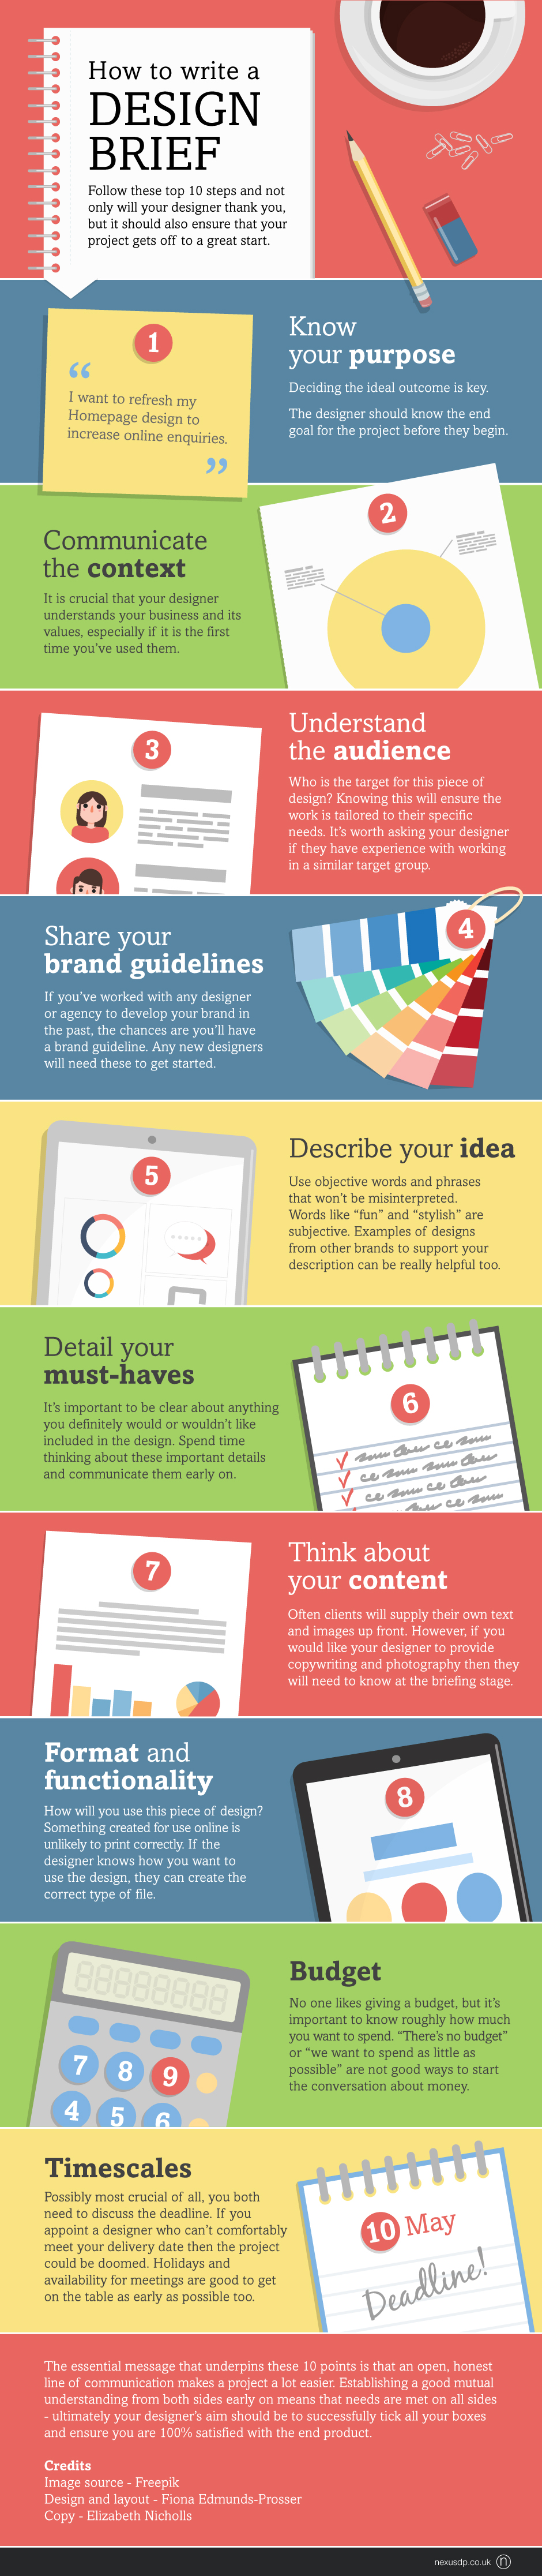 Top 10 Tips for Writing the Perfect Design Brief